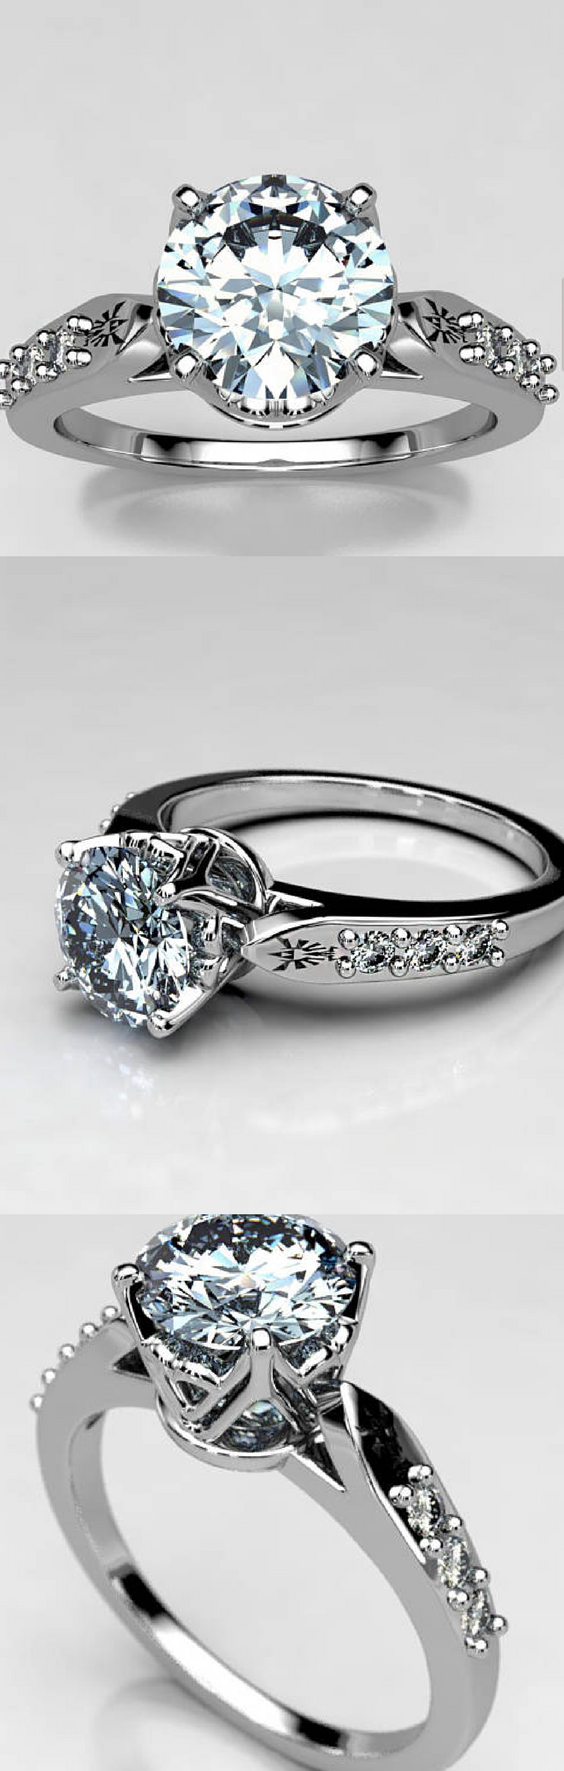 Featured Photo of Legend Of Zelda Inspired Engagement Ring With Moissanite Center Stone, and Small Accent Stones. One of our Best Seller Engagement Rings!